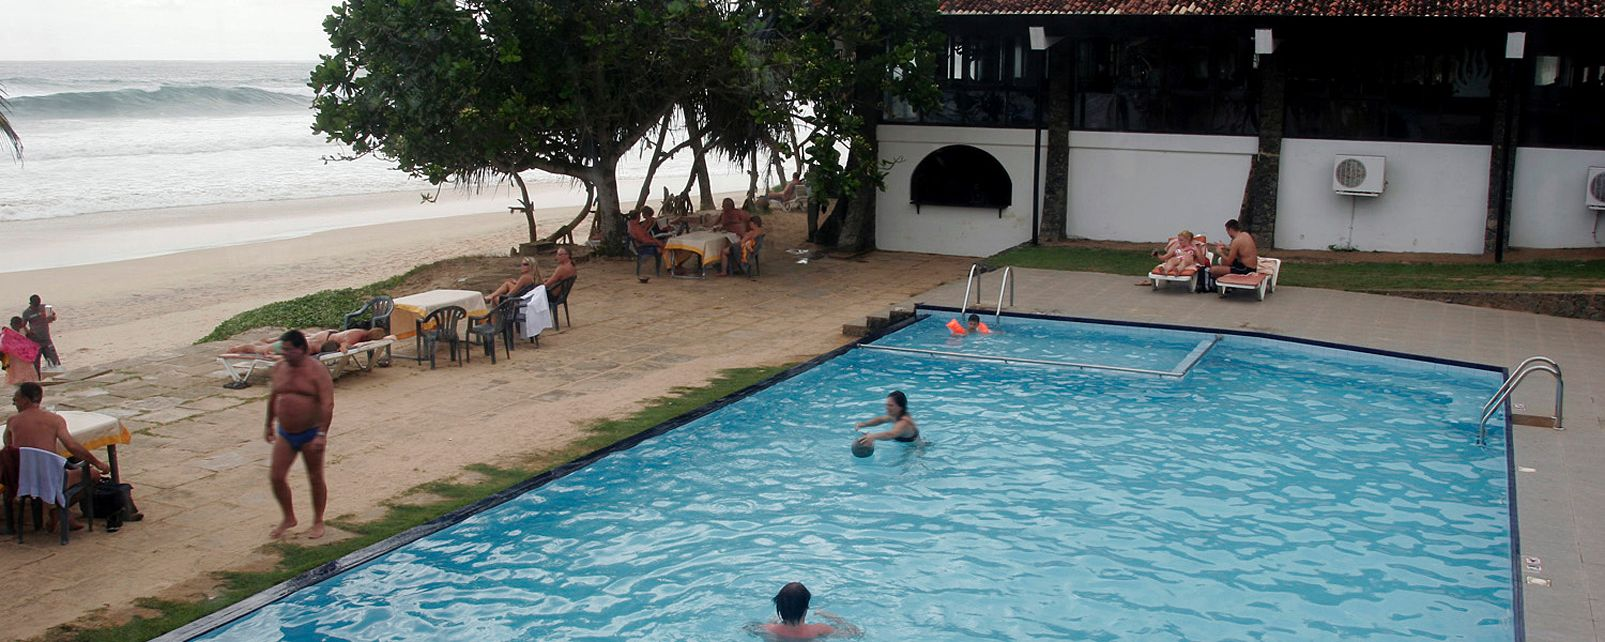 Koggala Beach Village Hotel